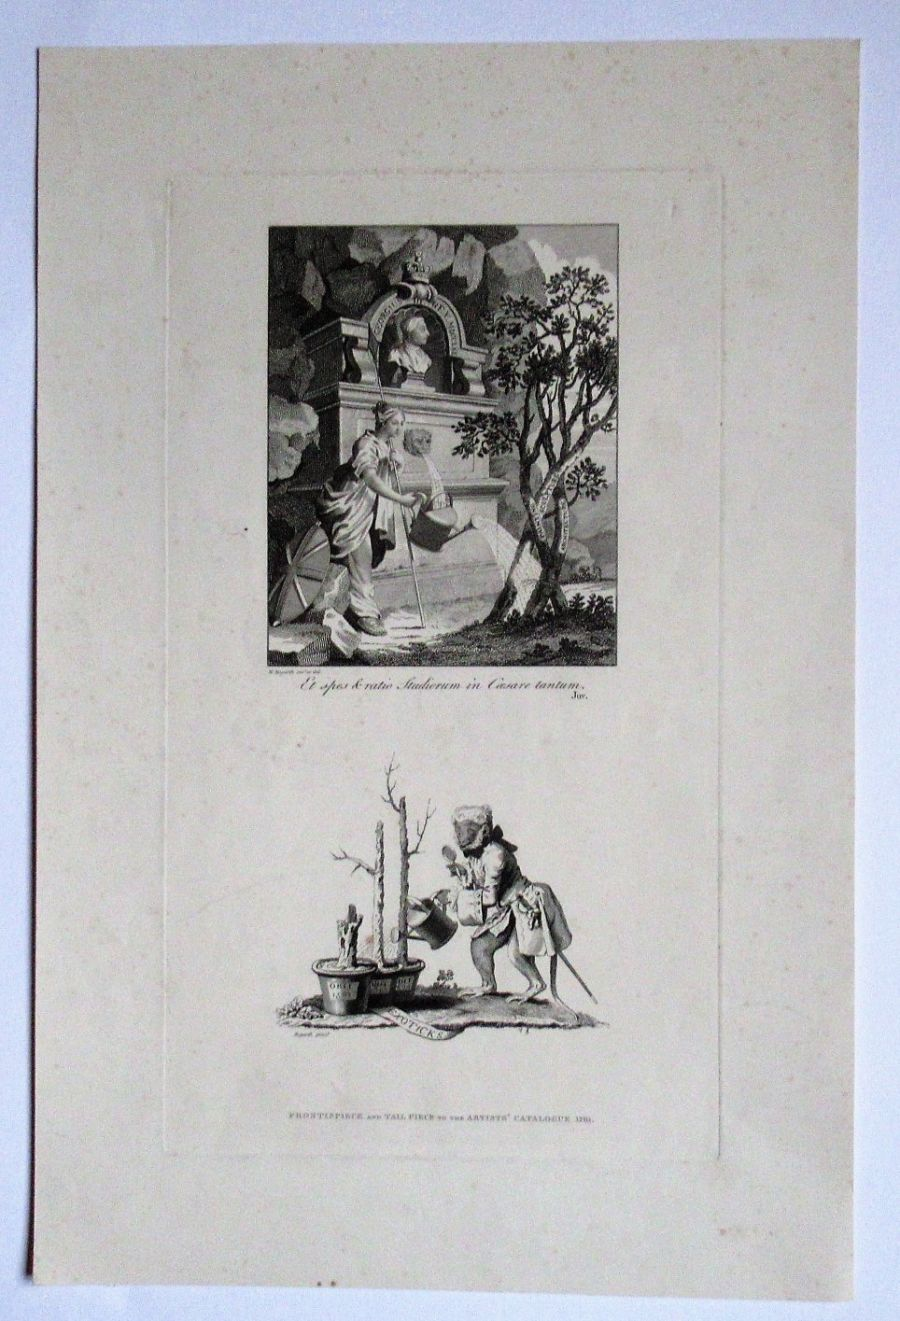 William Hogarth, Frontispiece and Tailpiece to The Artist's Catalogue, 1761